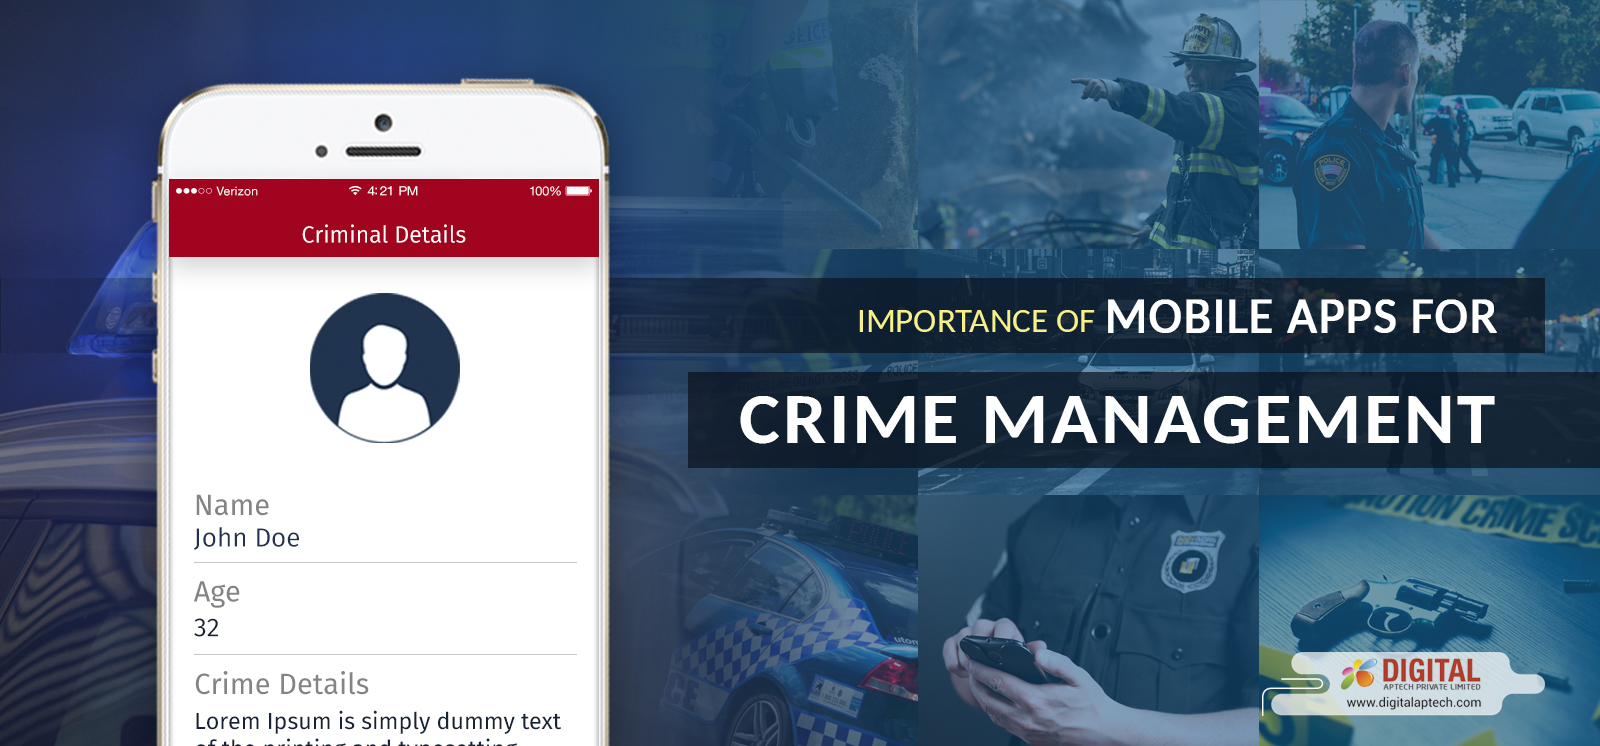 Why Mobile Apps are Essential for Crime Management?